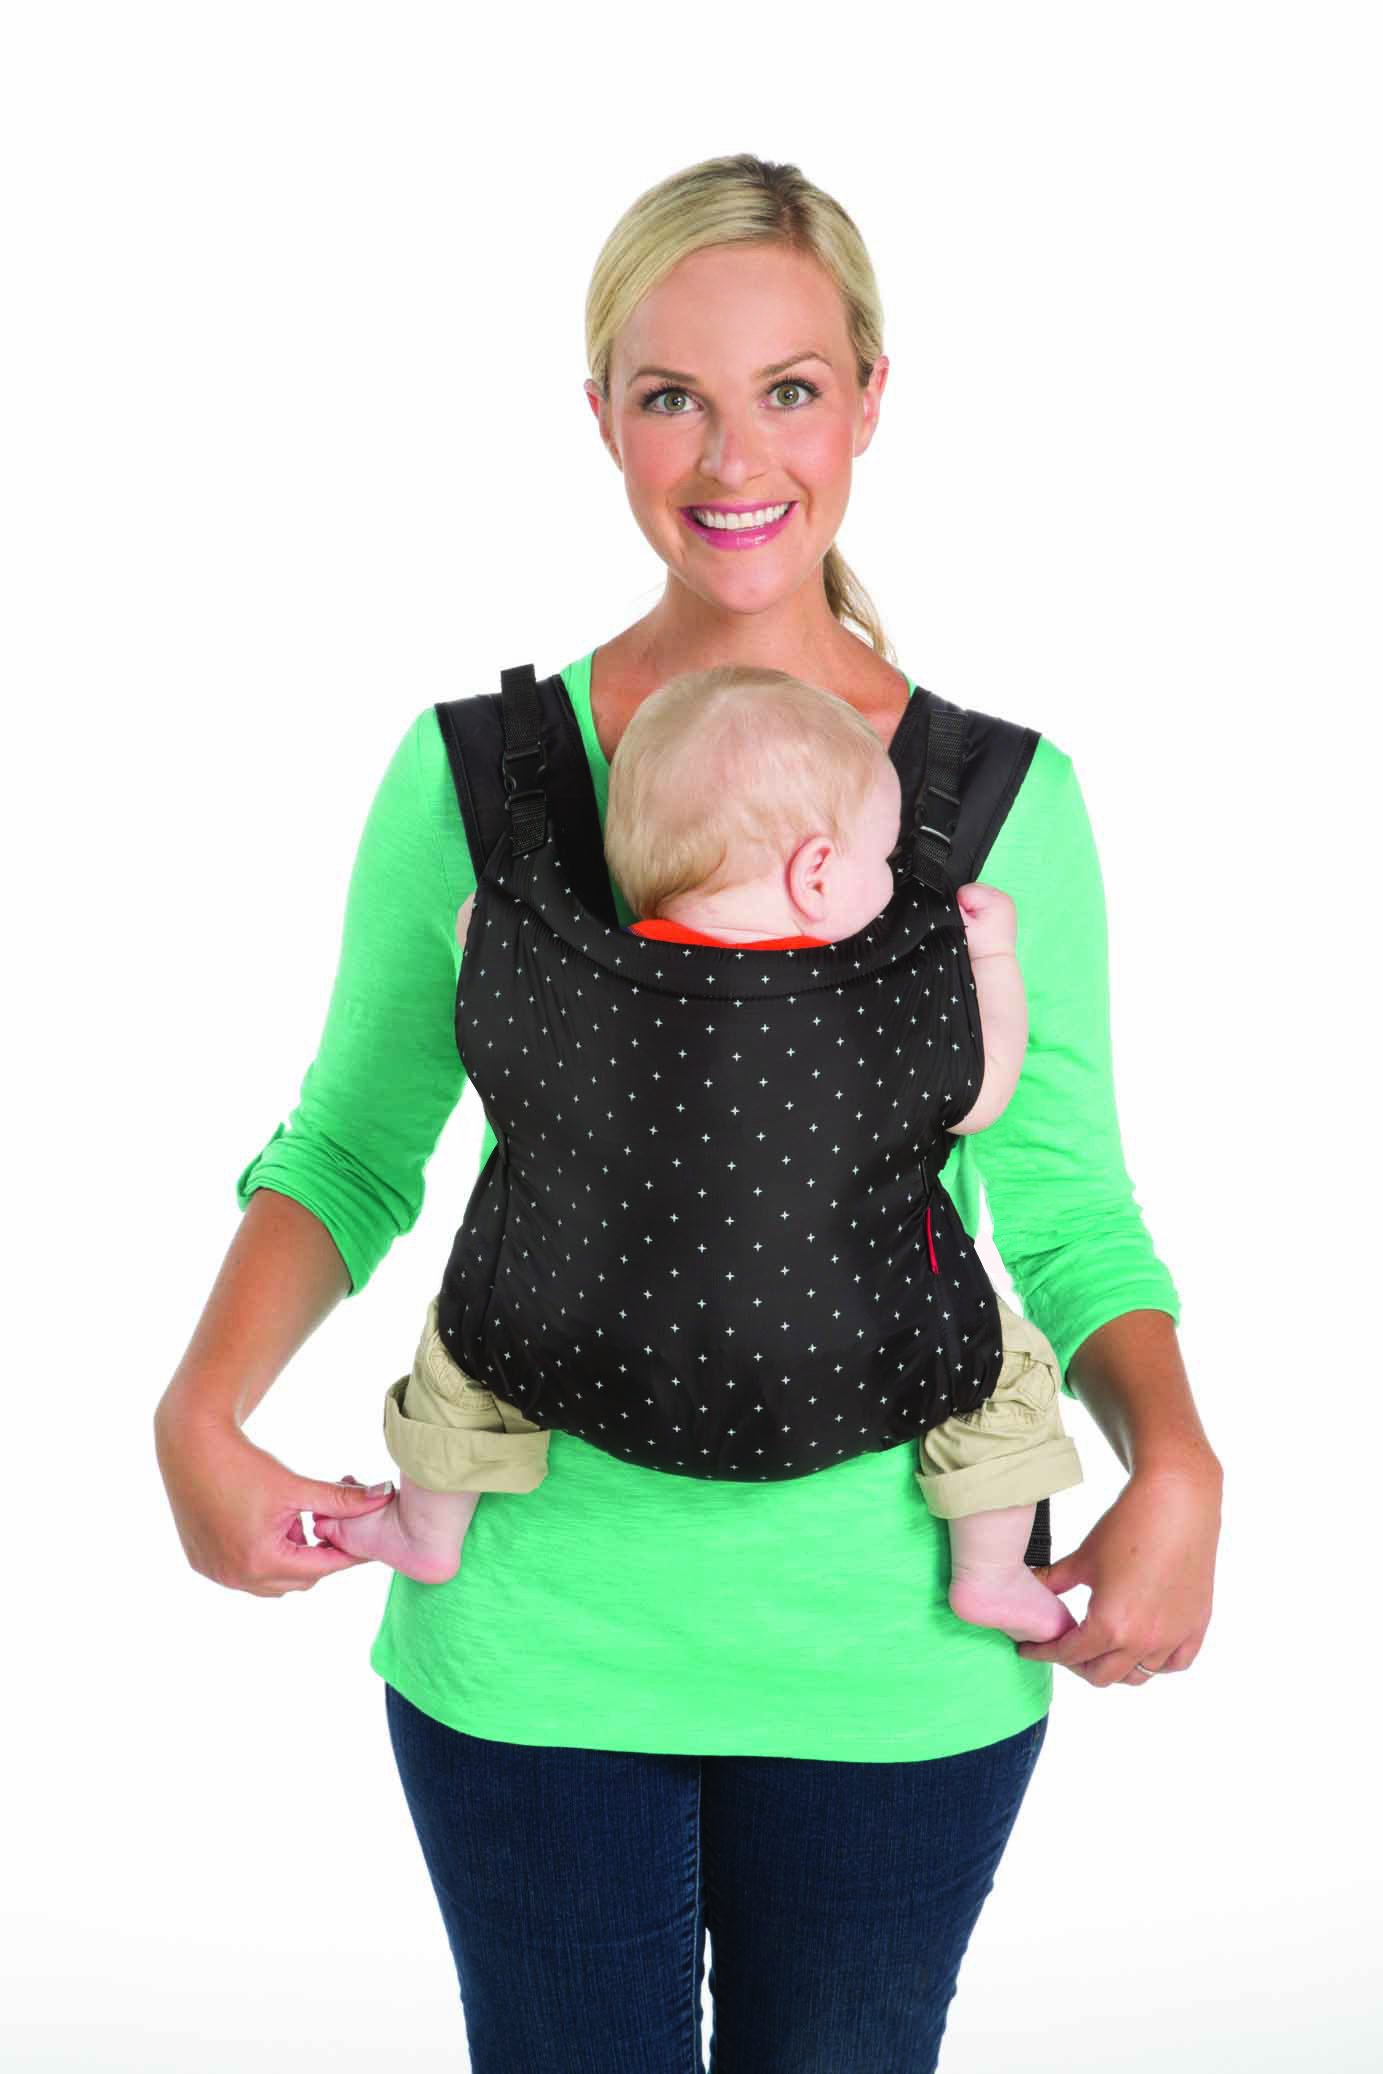 Infantino Zip Ergonomic Baby Travel Carrier, Black Infantino Fully safety tested Travel carrier that unfolds to for safe secure baby wearing Up to 18 kg 6